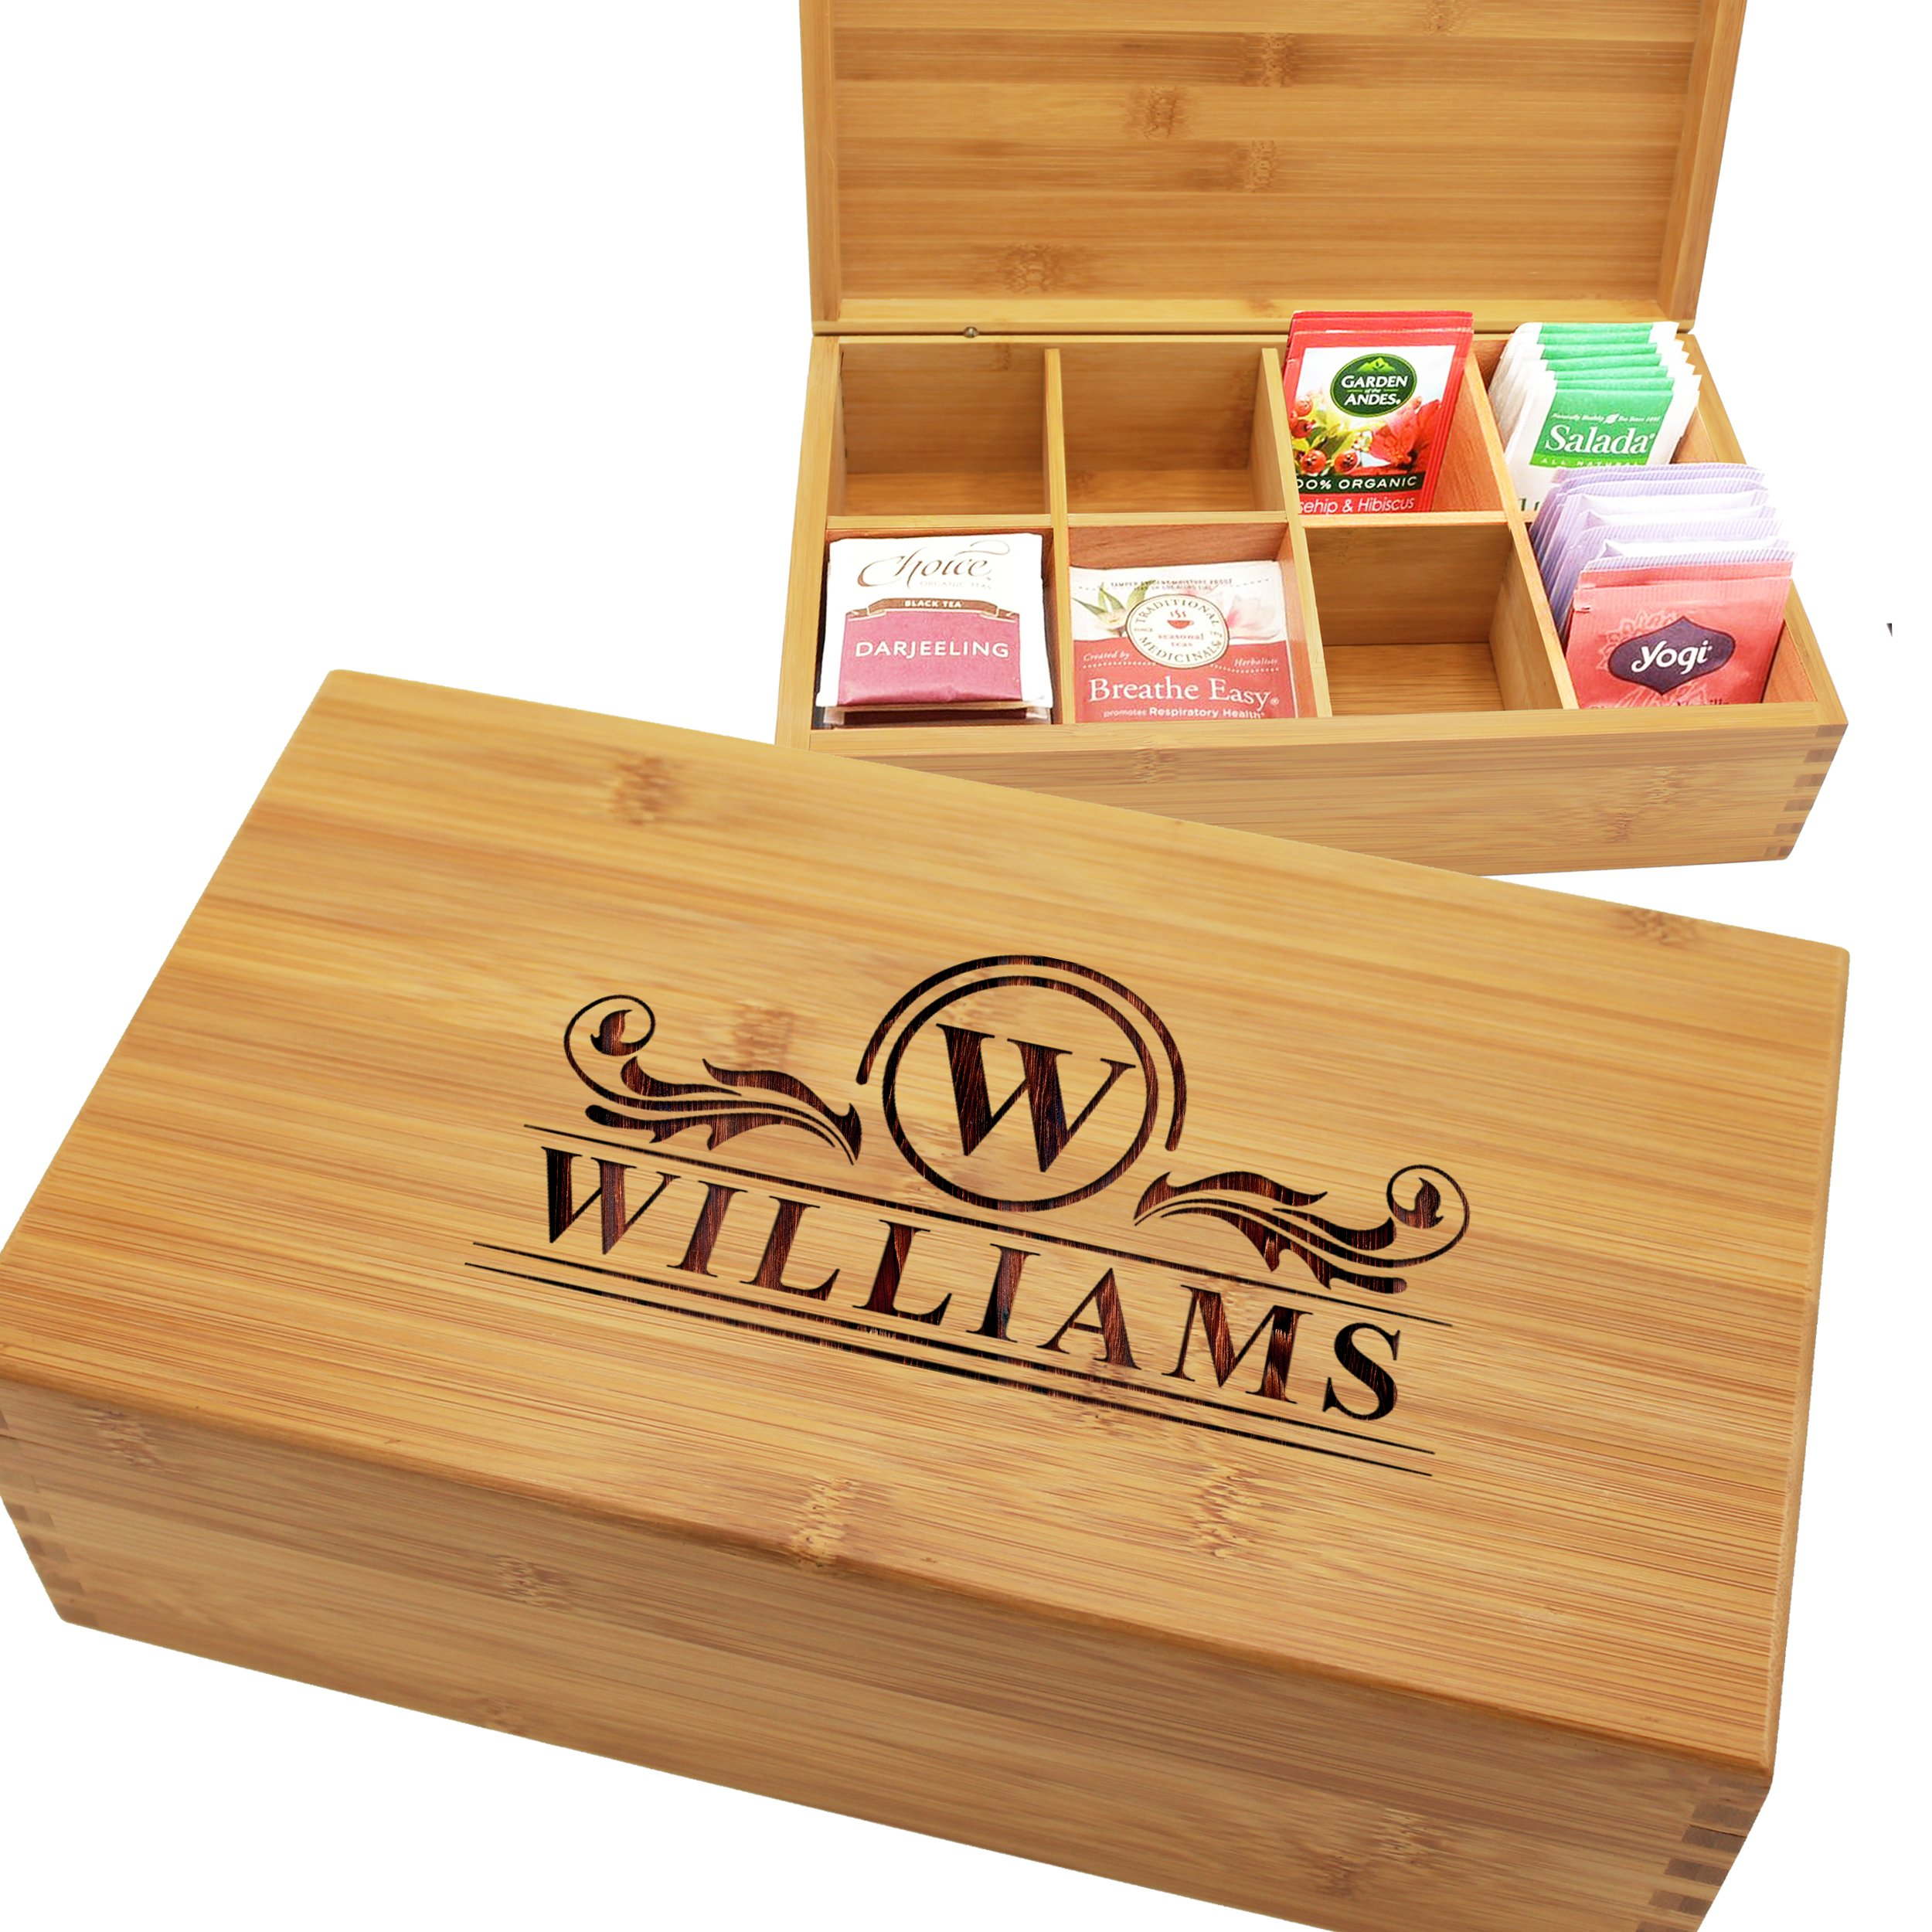 Custom Personalized Wood Tea Box Caddy Organizer - Engraved Bamboo Tea Storage Holder - Monogrammed for Free by The Wedding Party Store (Image #4)